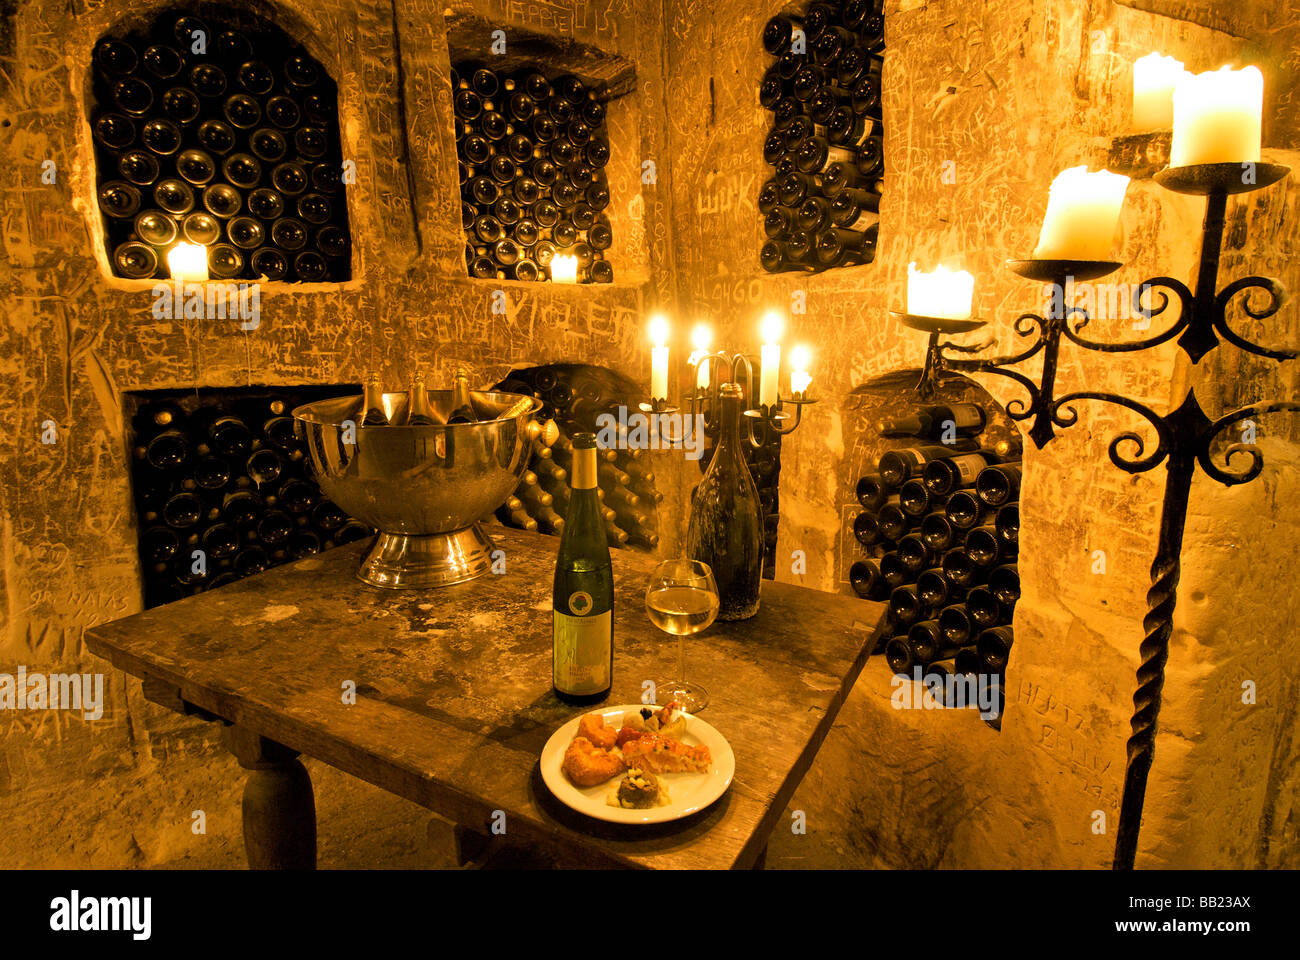 Europe, Netherlands, Limburg, Maastricht, Chateau Neercanne interior of wine celler, Terraced Castle, Unesco - Stock Image